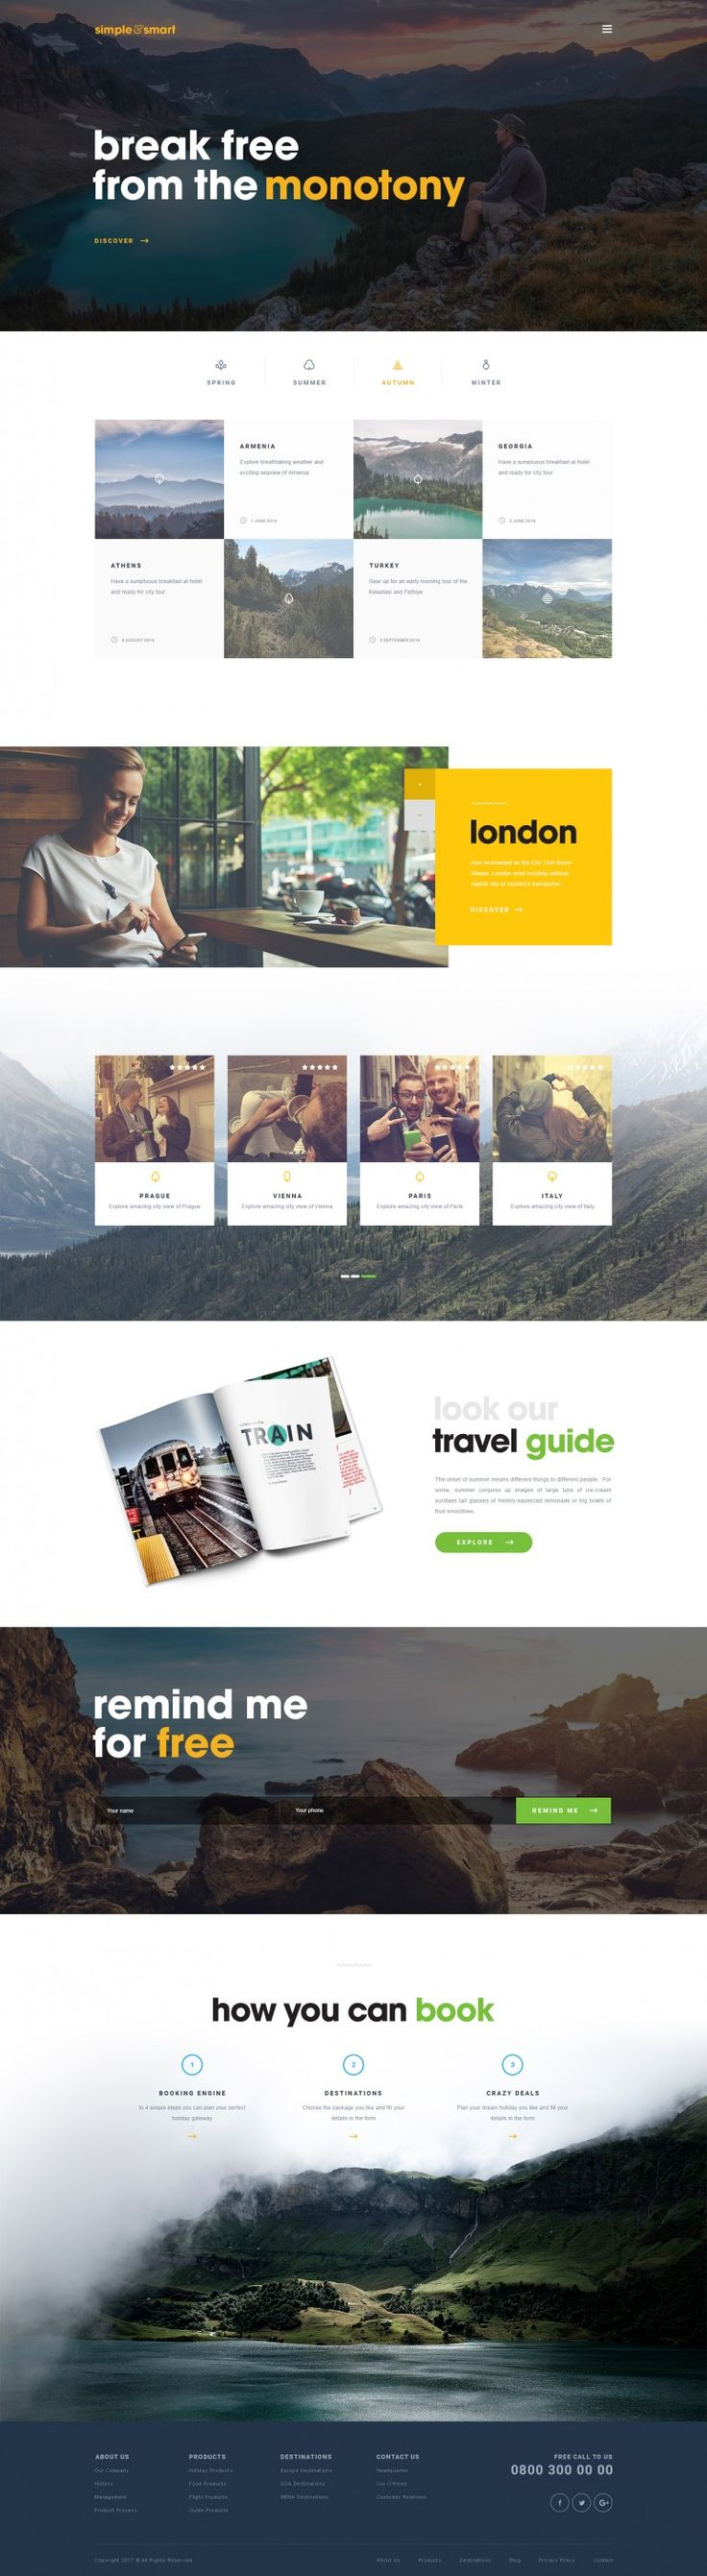 144 best style simple web design images on pinterest plants 144 best style simple web design images on pinterest plants advertising and box pronofoot35fo Choice Image